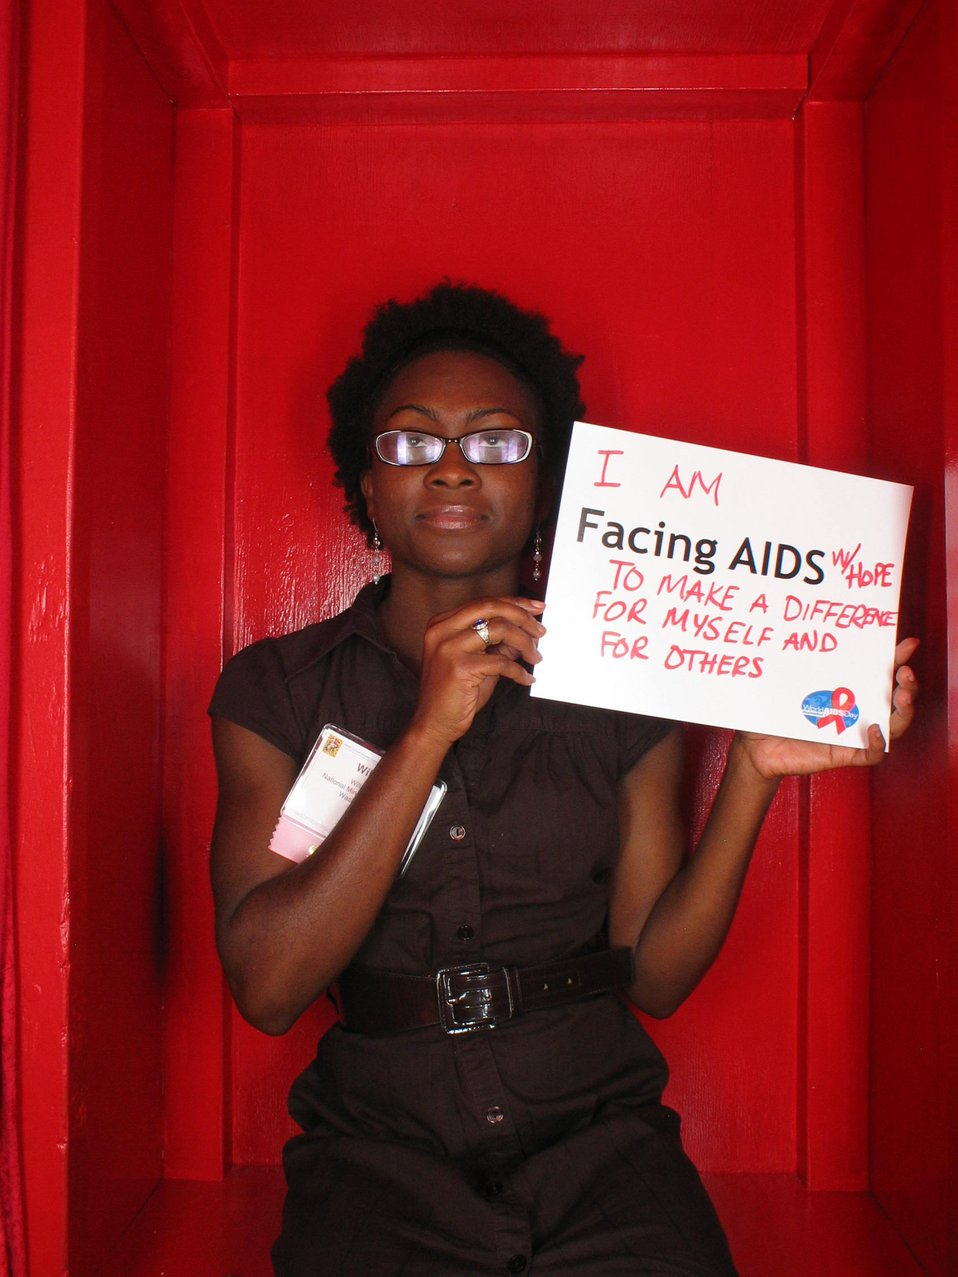 I am Facing AIDS with hope to make a difference for myself and others.